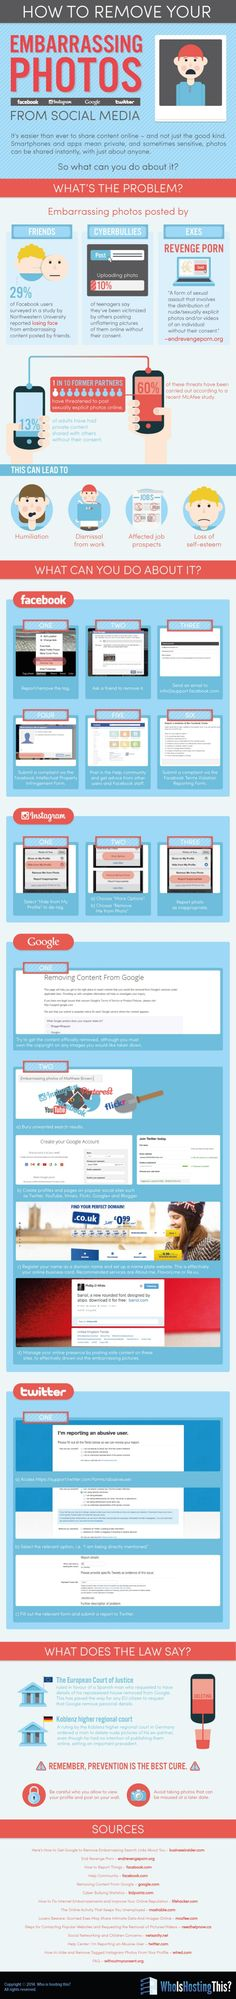 How To Remove Embarrassing Photos From #SocialMedia - #Facebook, #Twitter, #Google #Instagram - #infographic